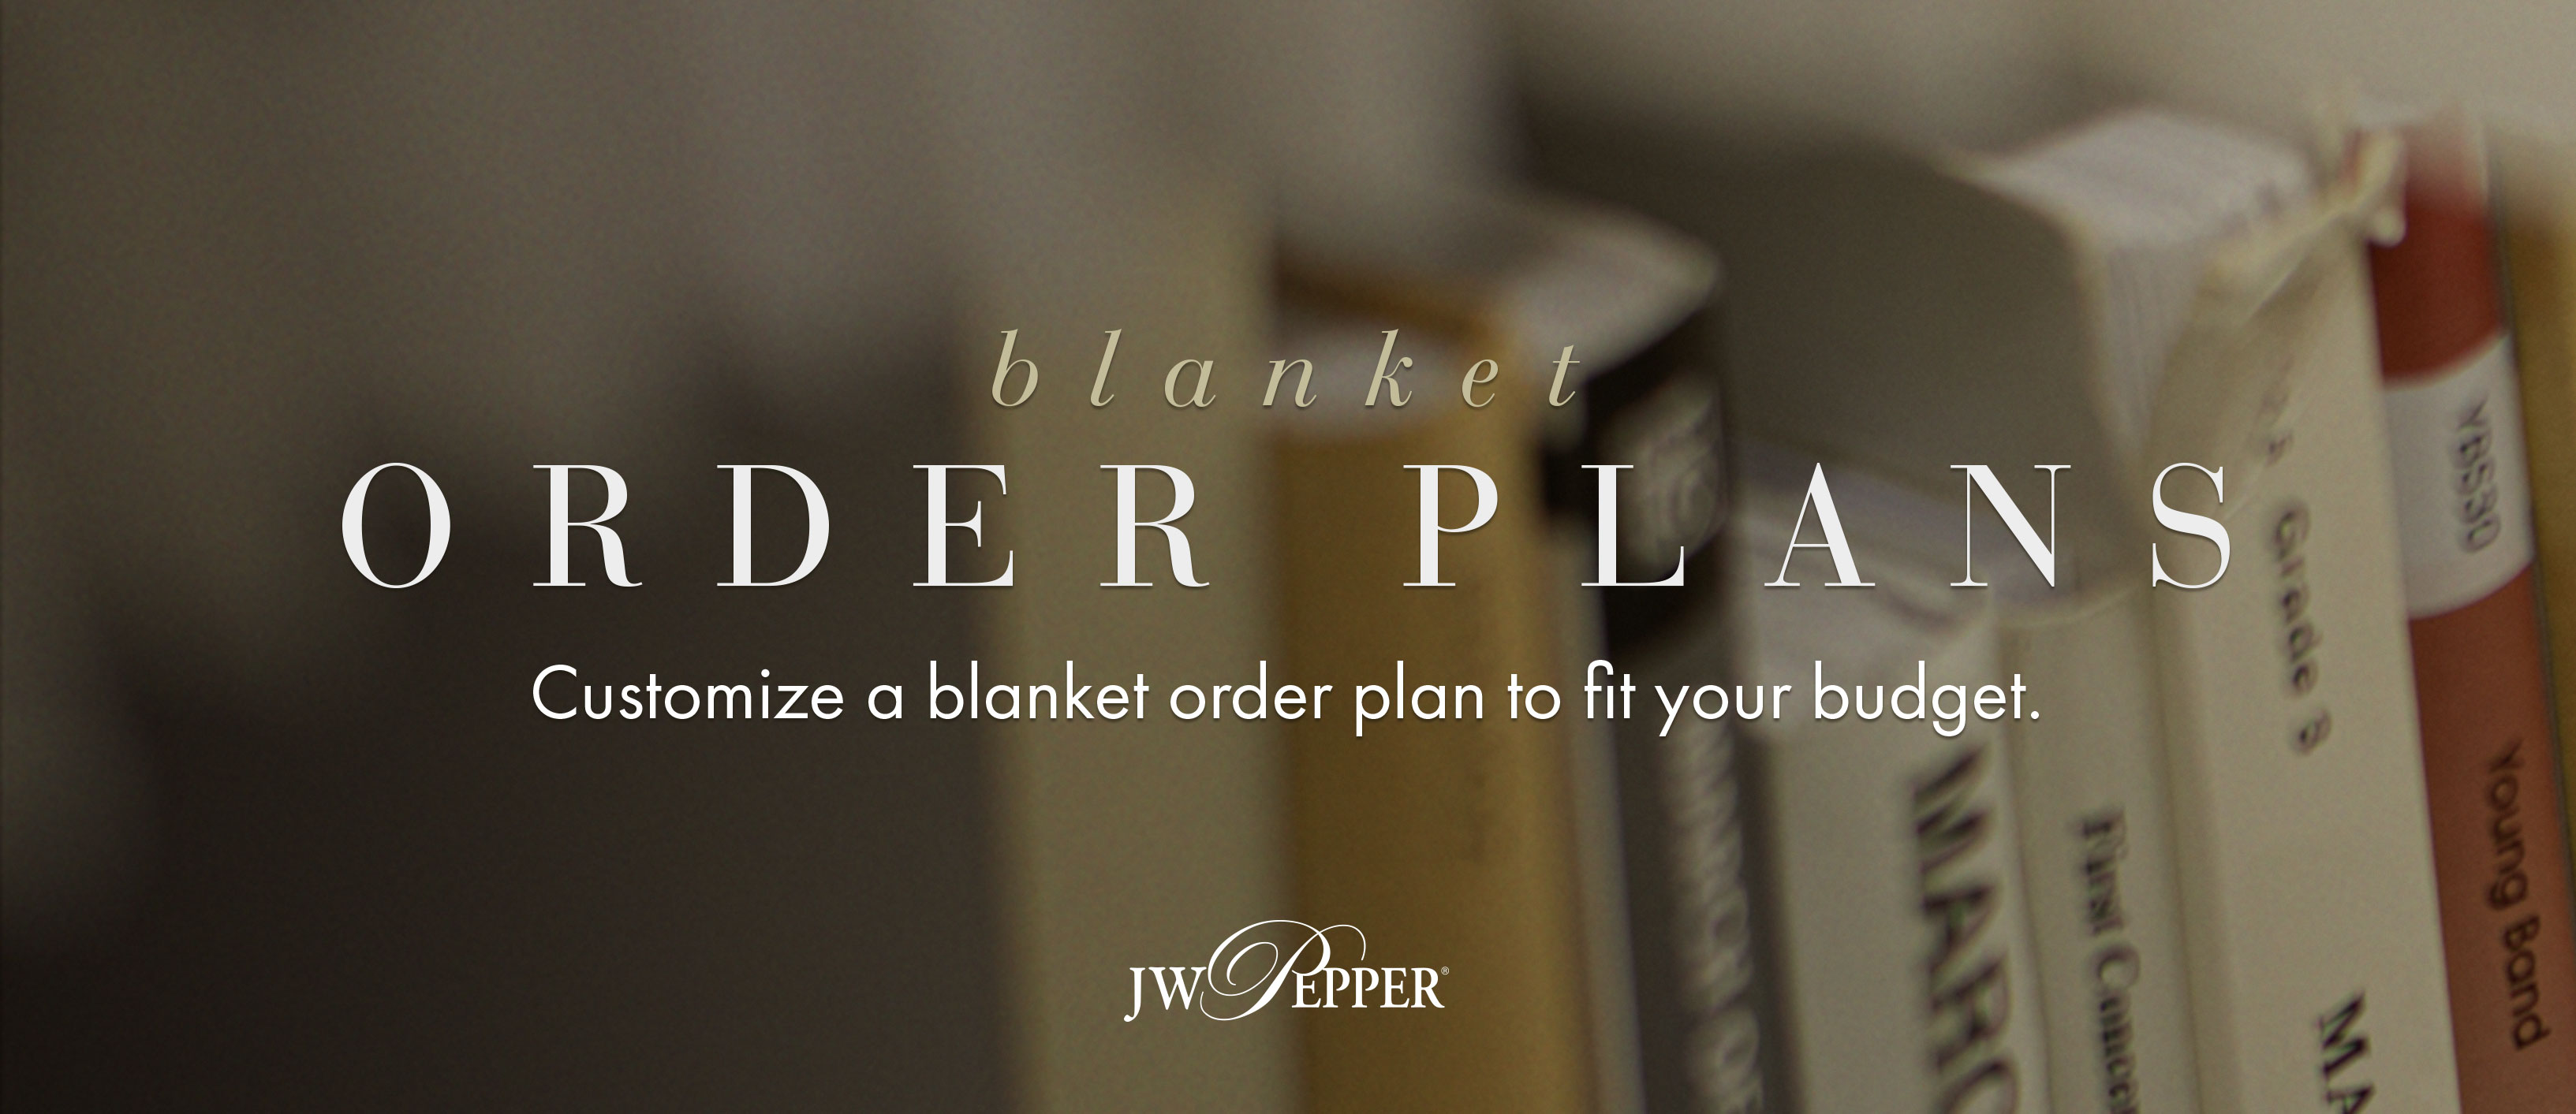 Customize a blanket order plan to fit your library budget.